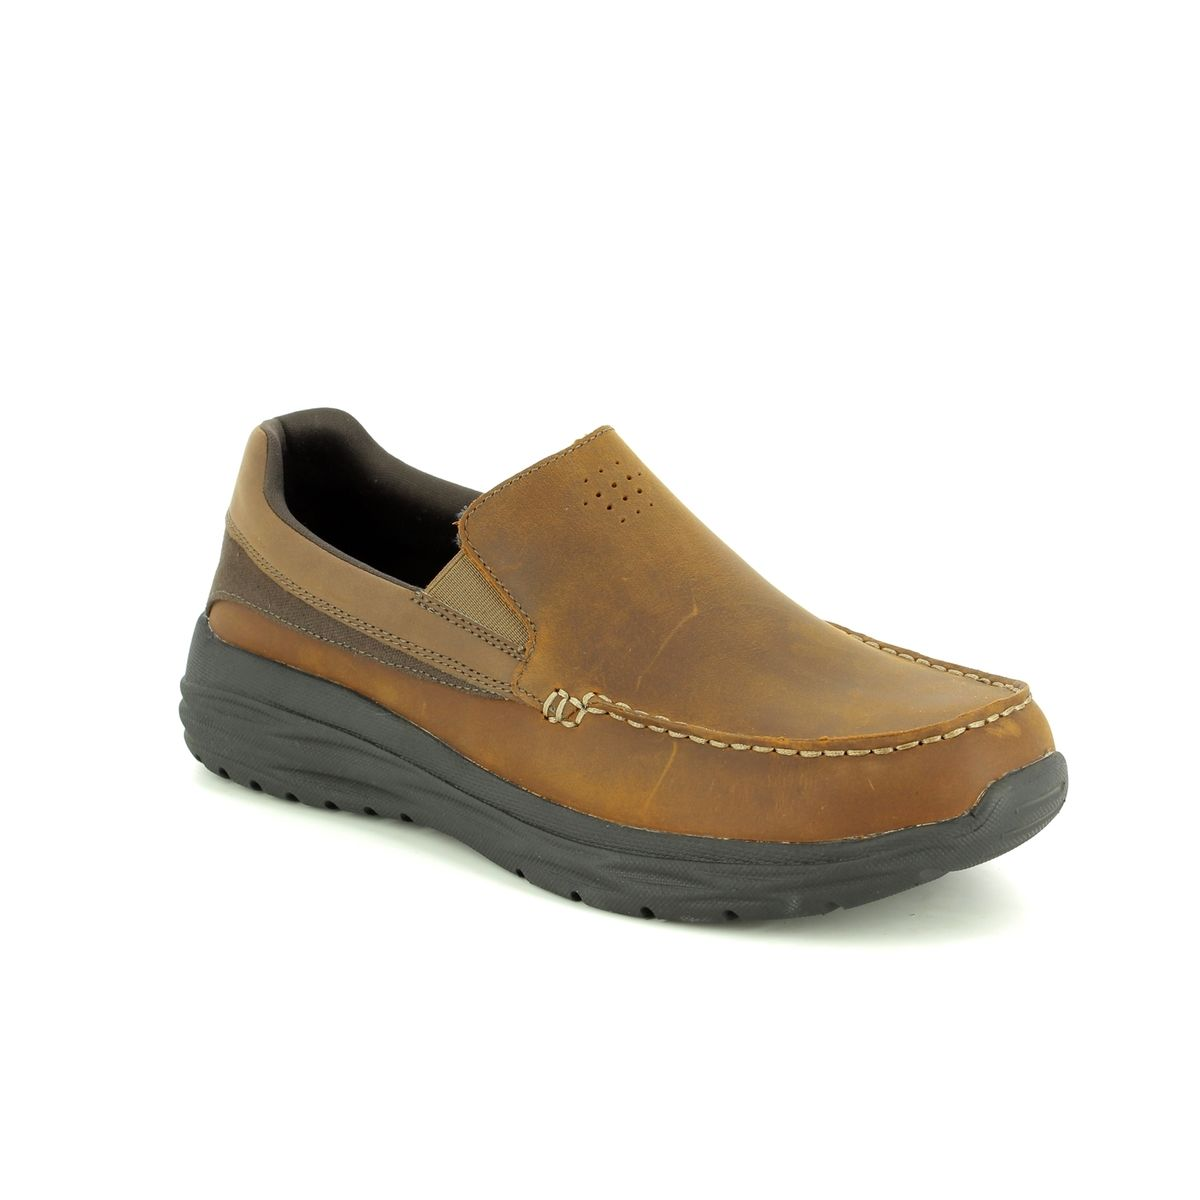 e04c11415ed Skechers Harsen Ortego 65620 CDB Brown casual shoes